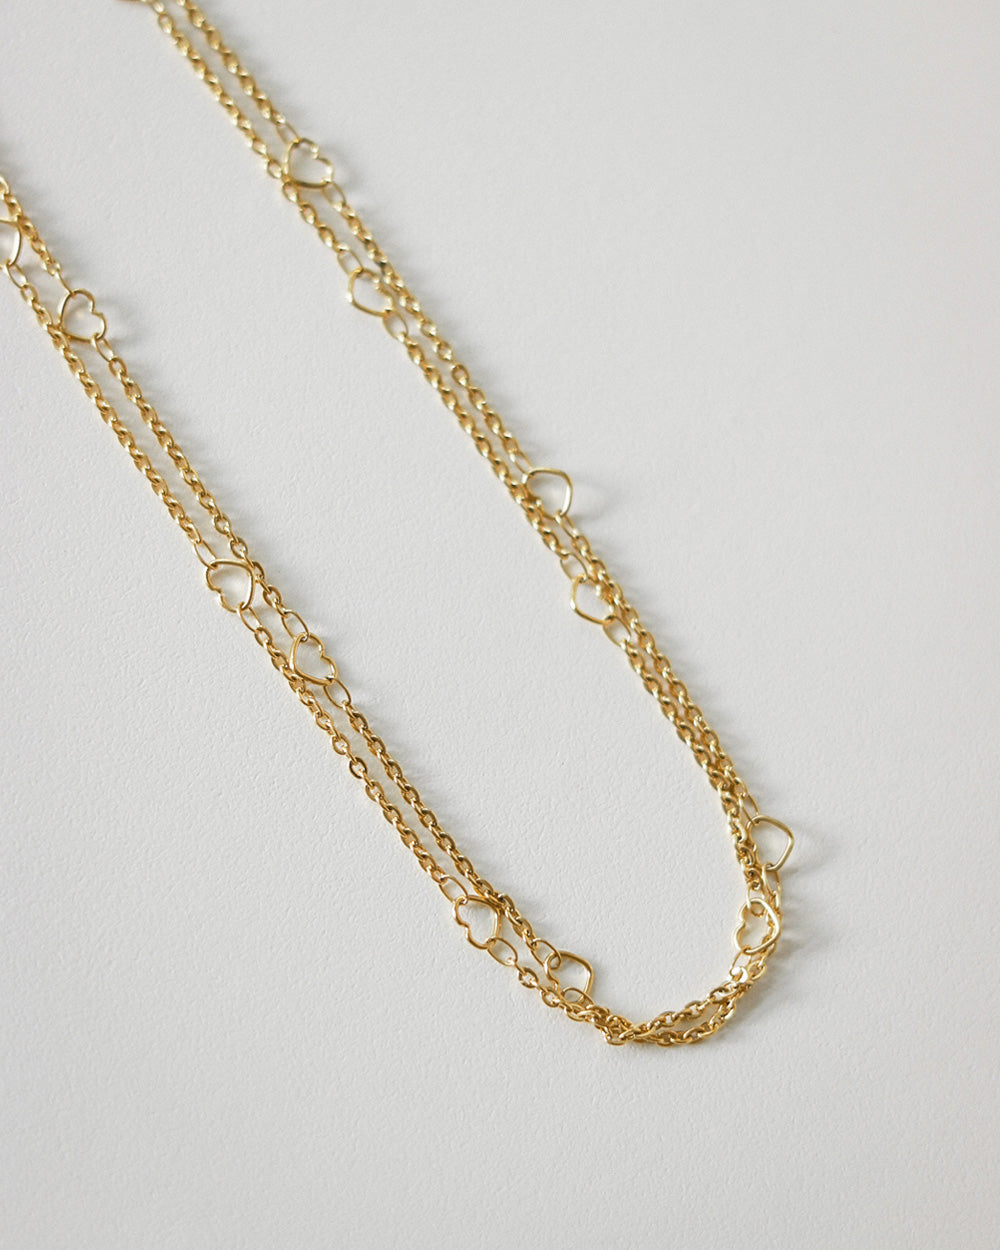 Tiny little golden hearts on a basic chain necklace - Adore chain by The Hexad